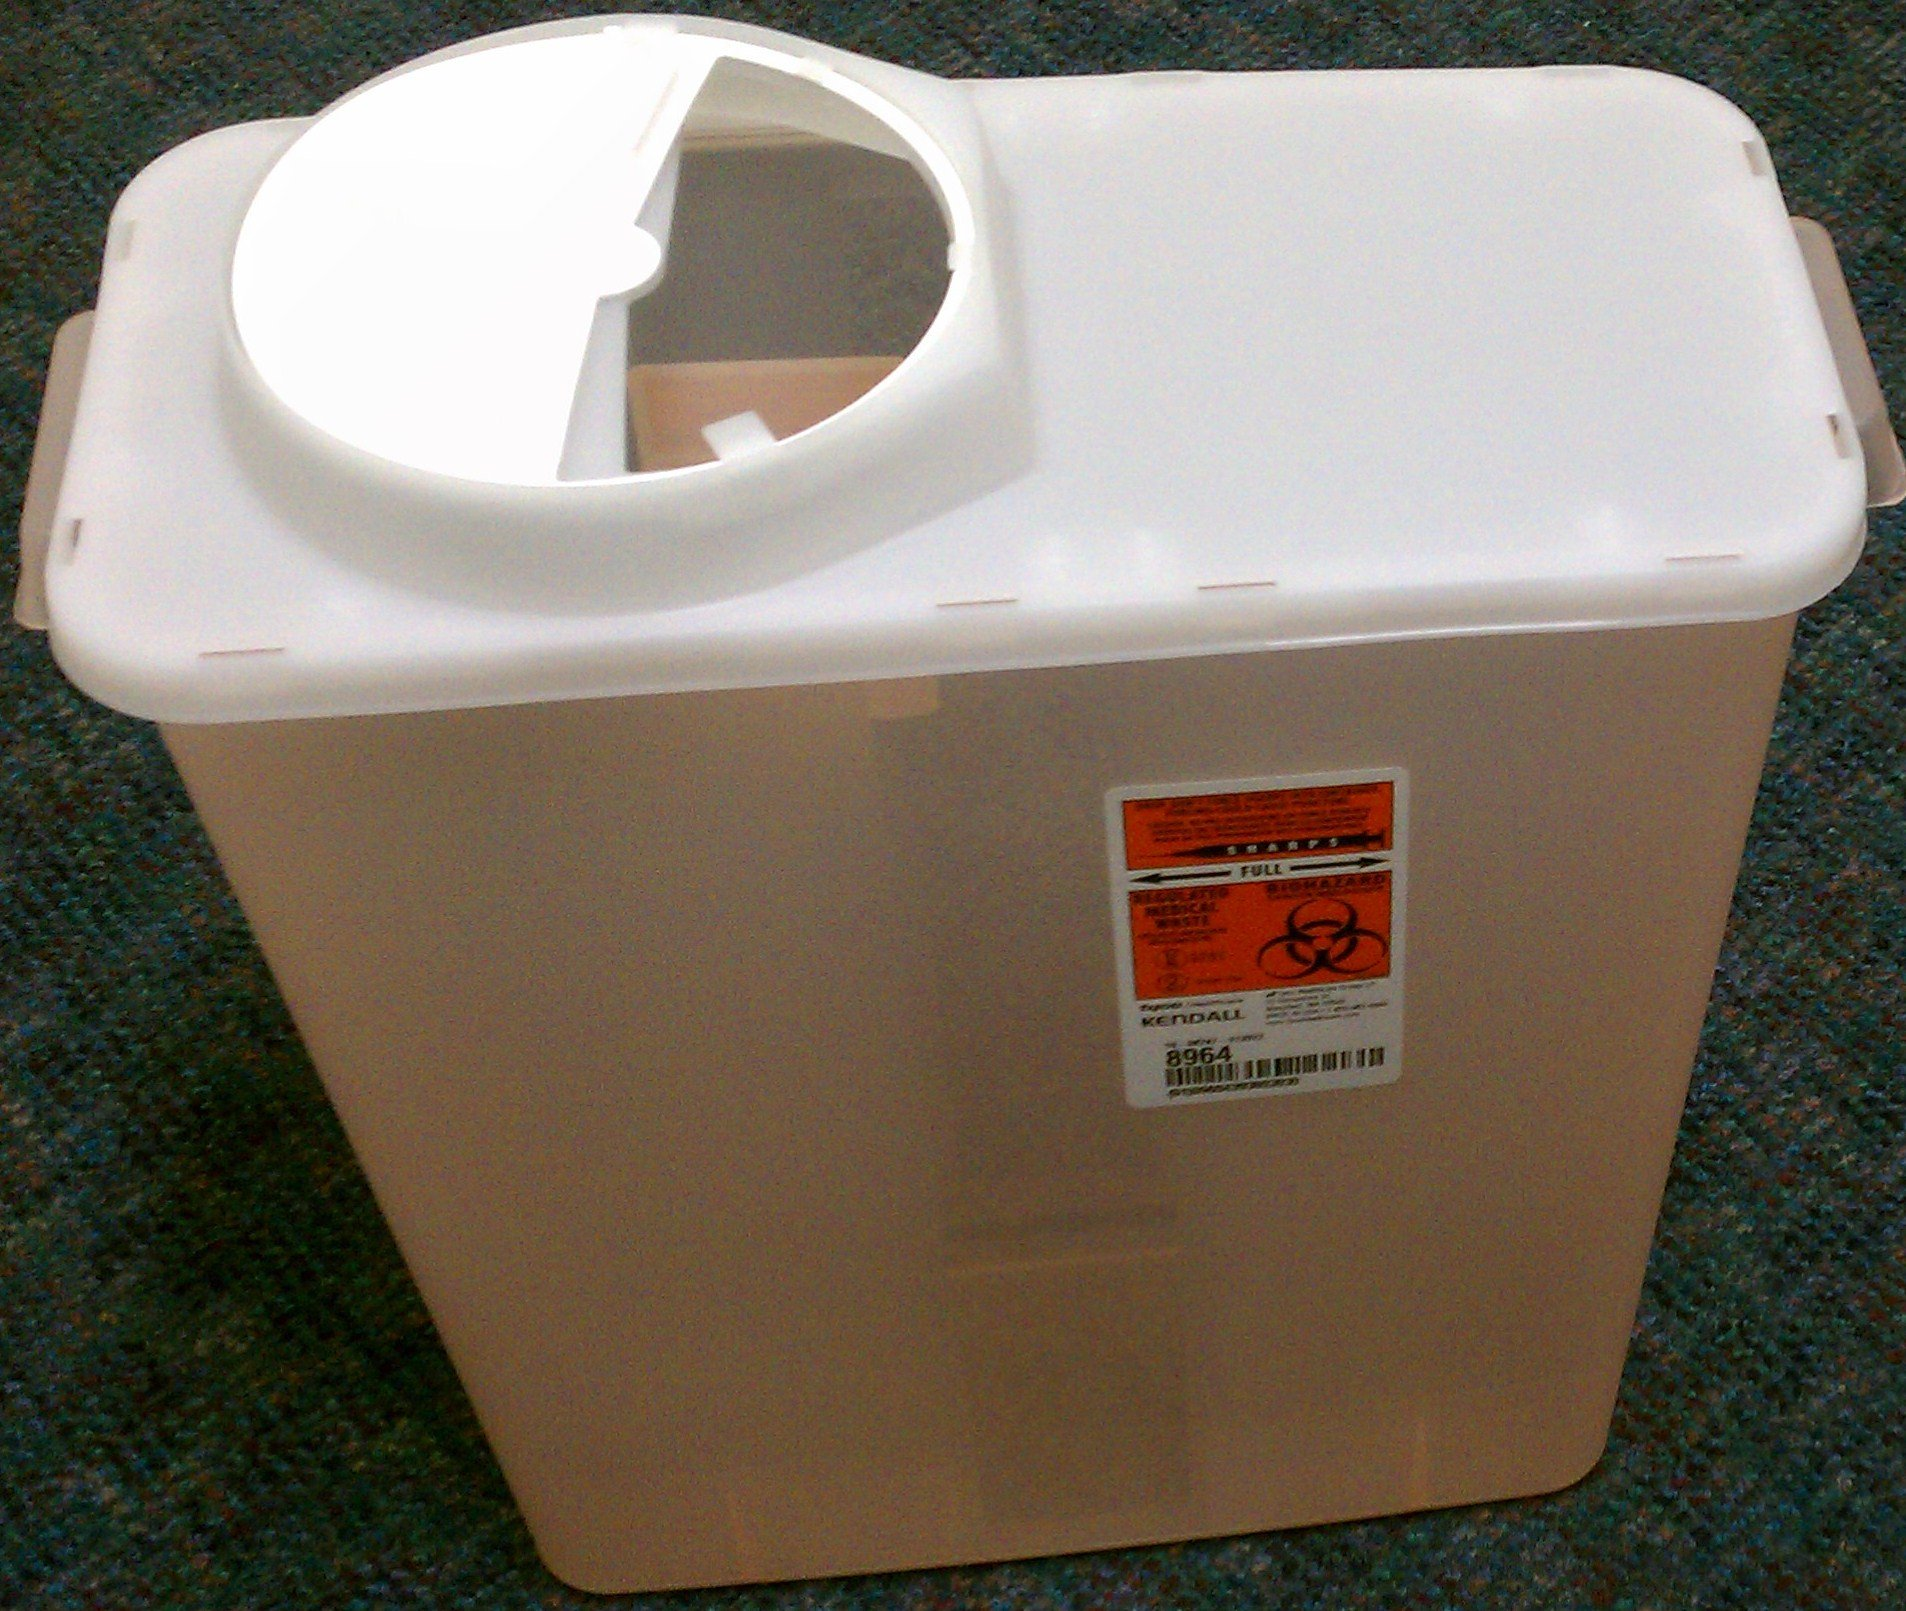 Kendall Sharps Container with Rotor Lid - 3 Gallon